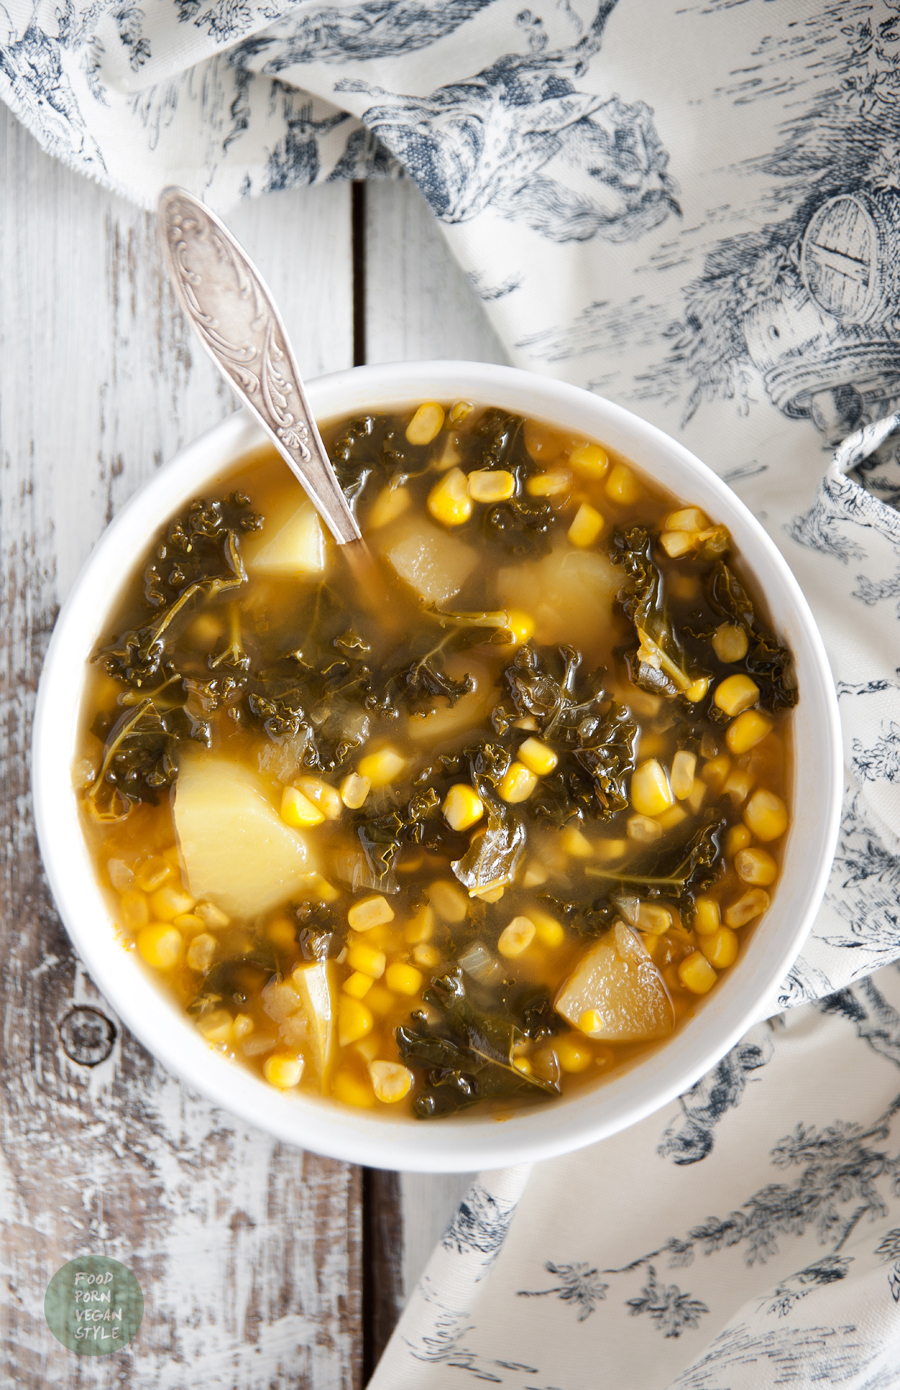 Sweetcorn soup with apples, potatoes and kale